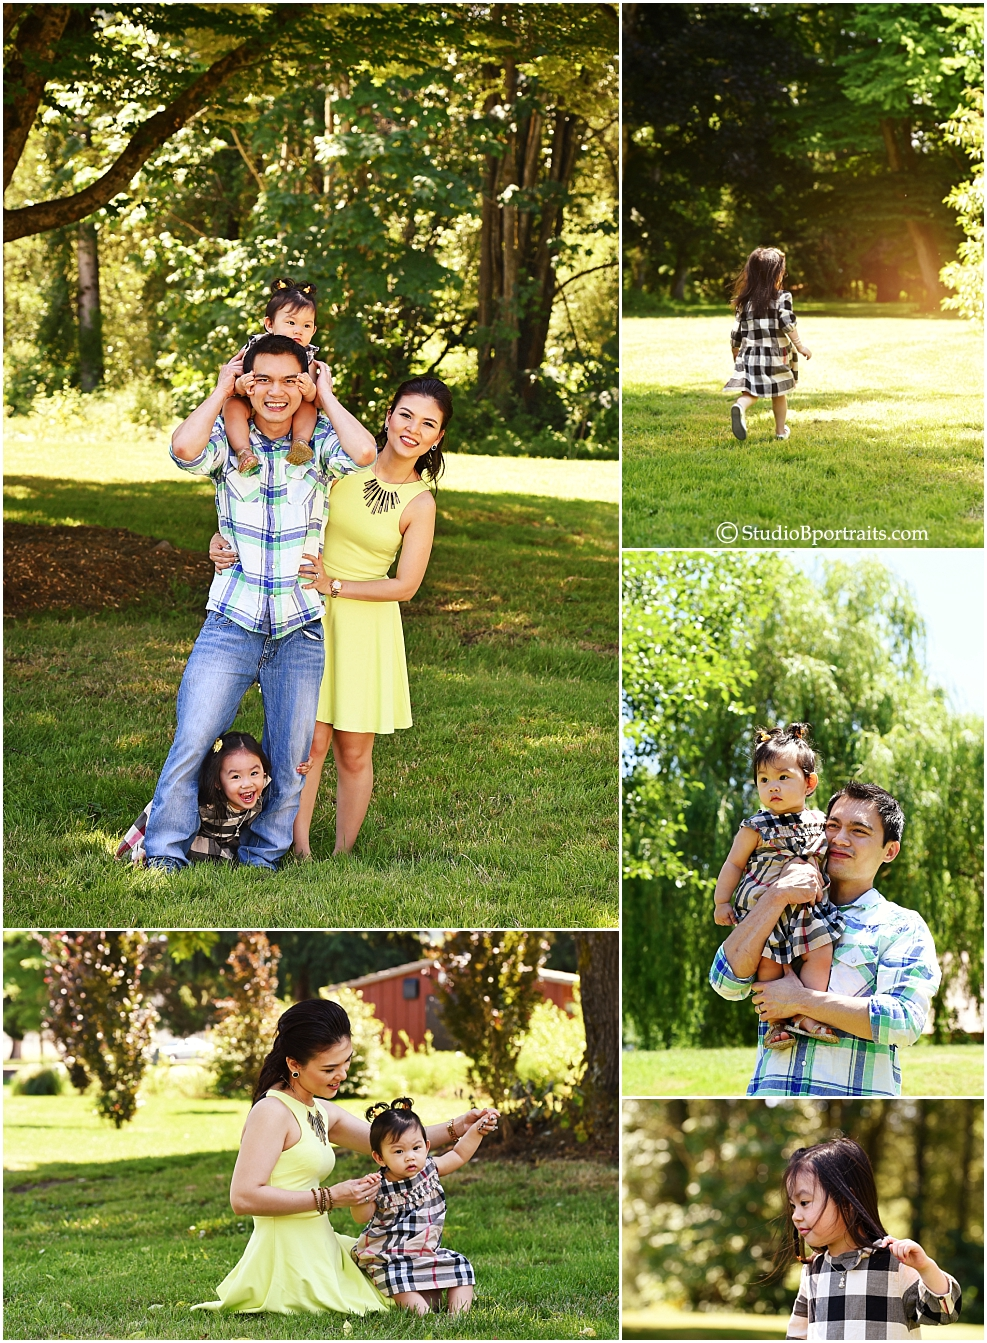 Style By Season featuring family in Burberry for Summer photo shoot in Issaquah